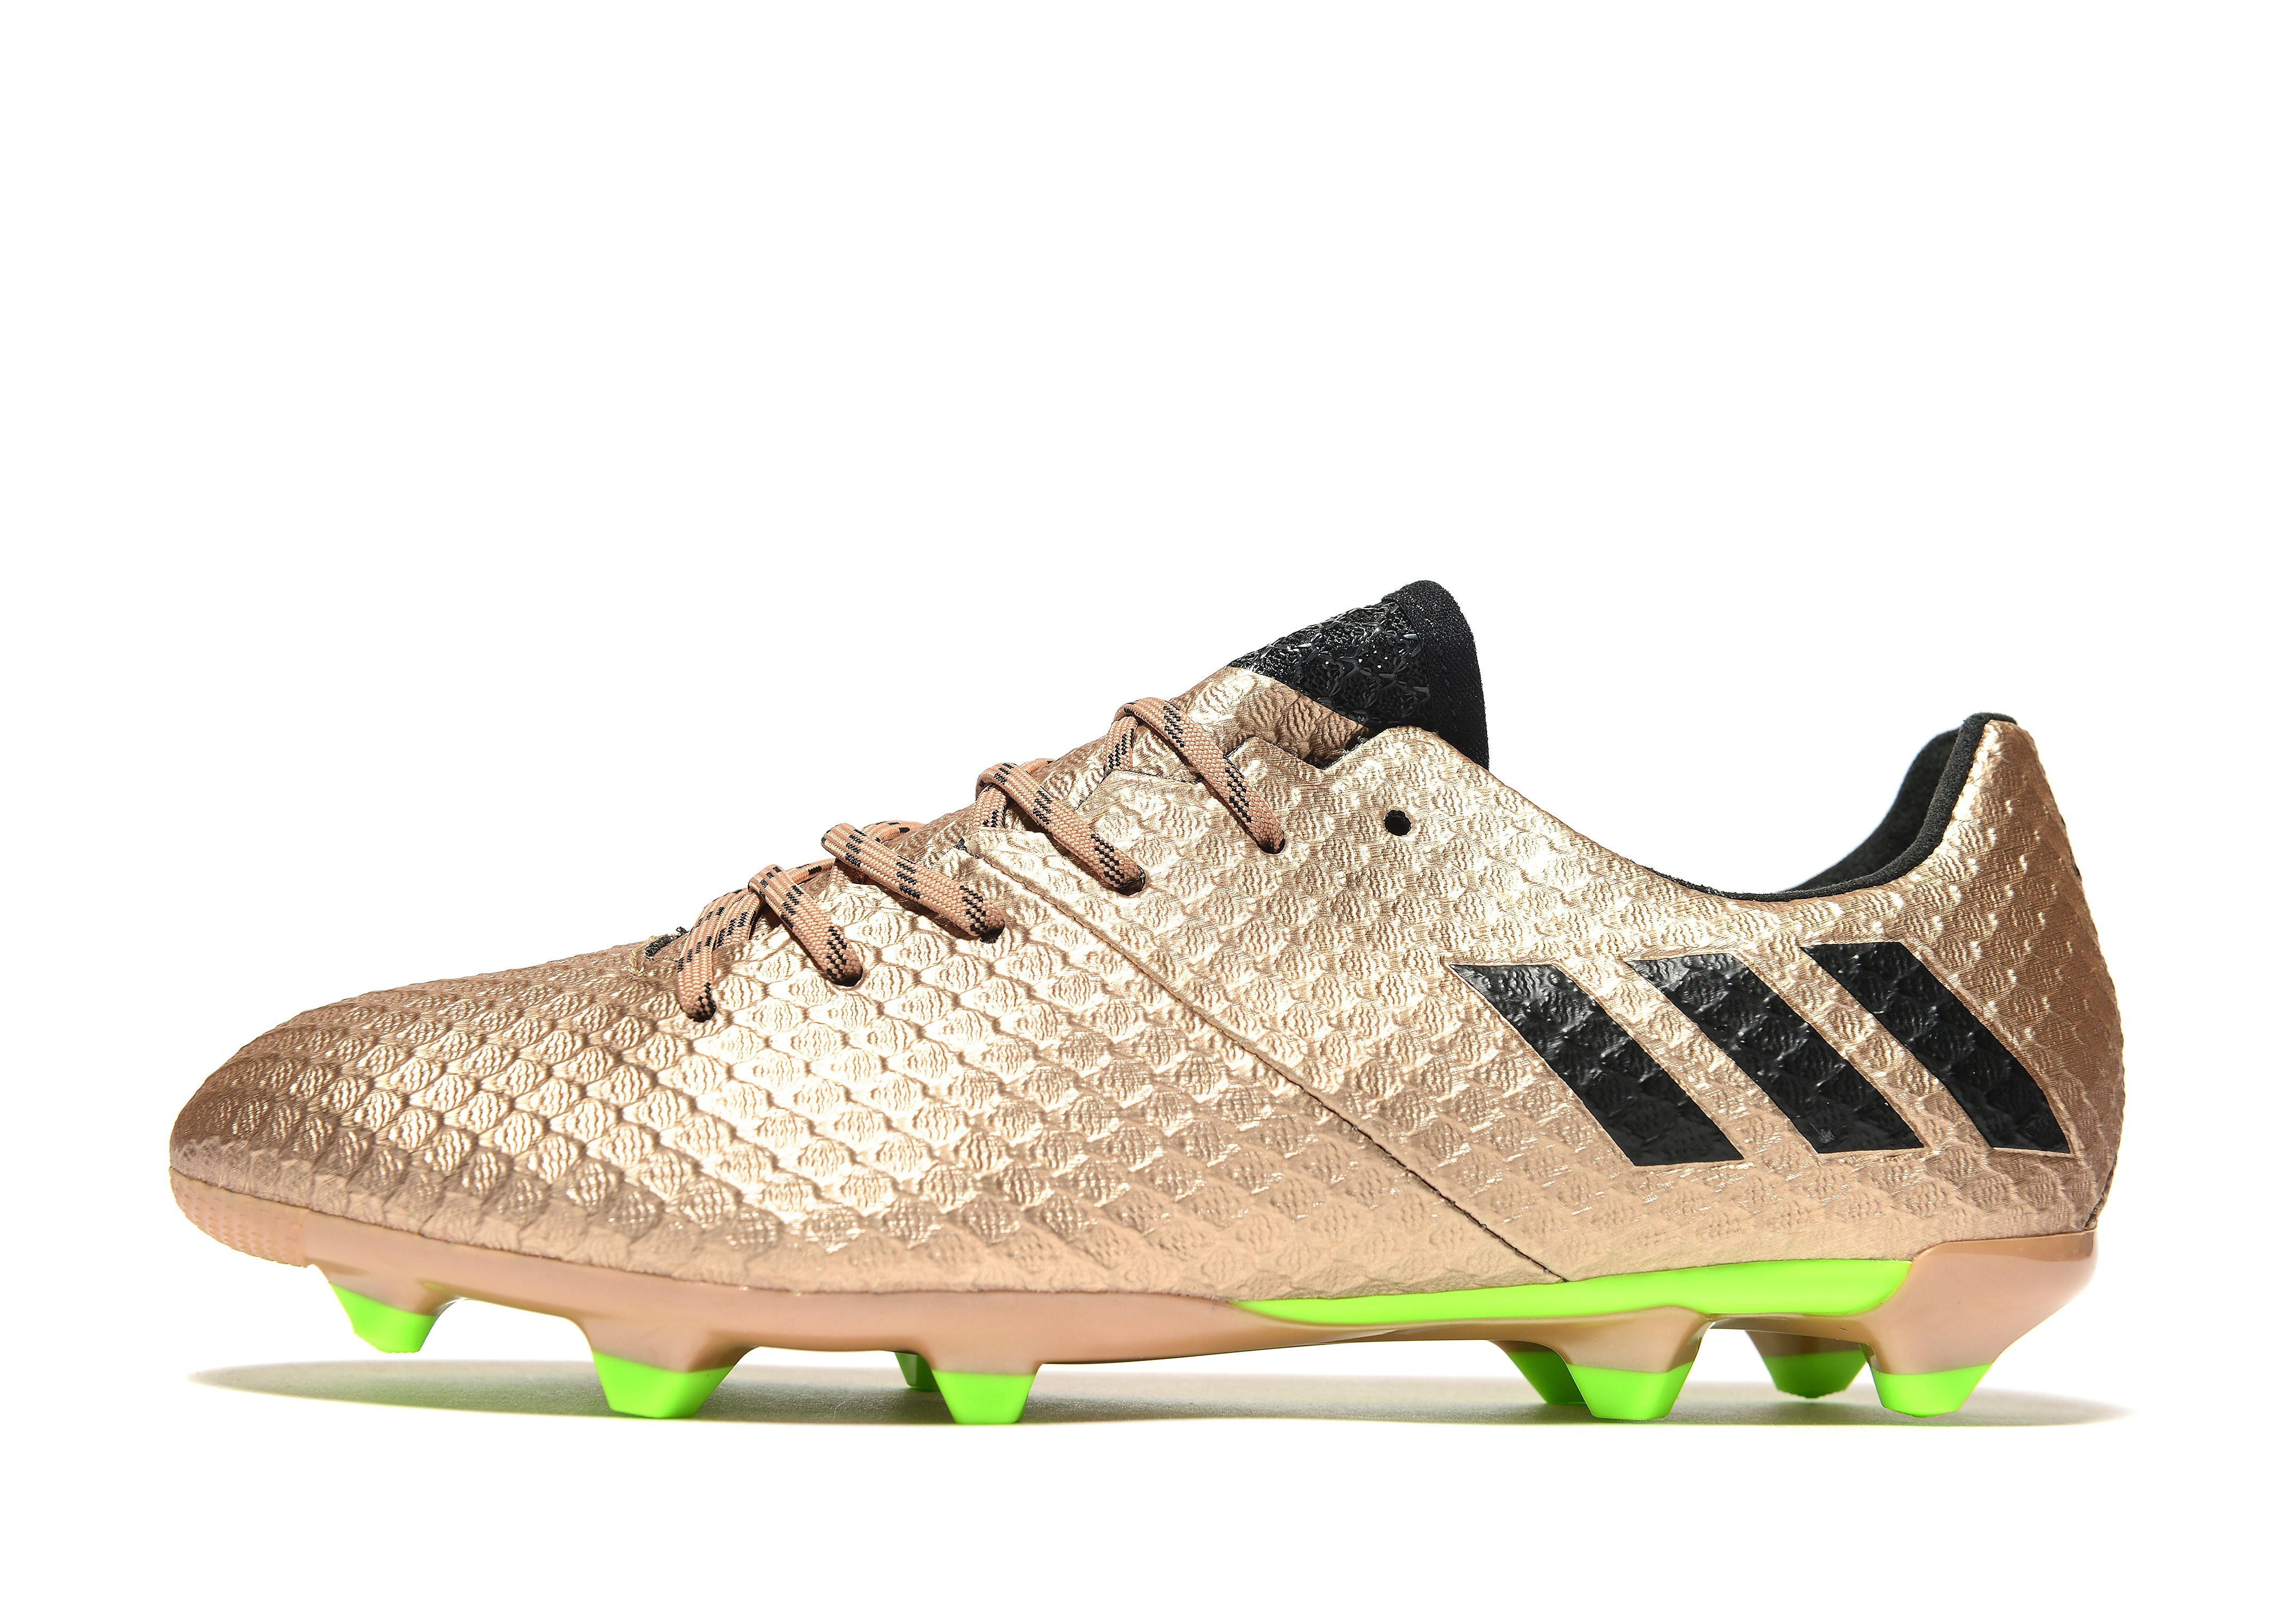 adidas Messi 16.1 FG Junior